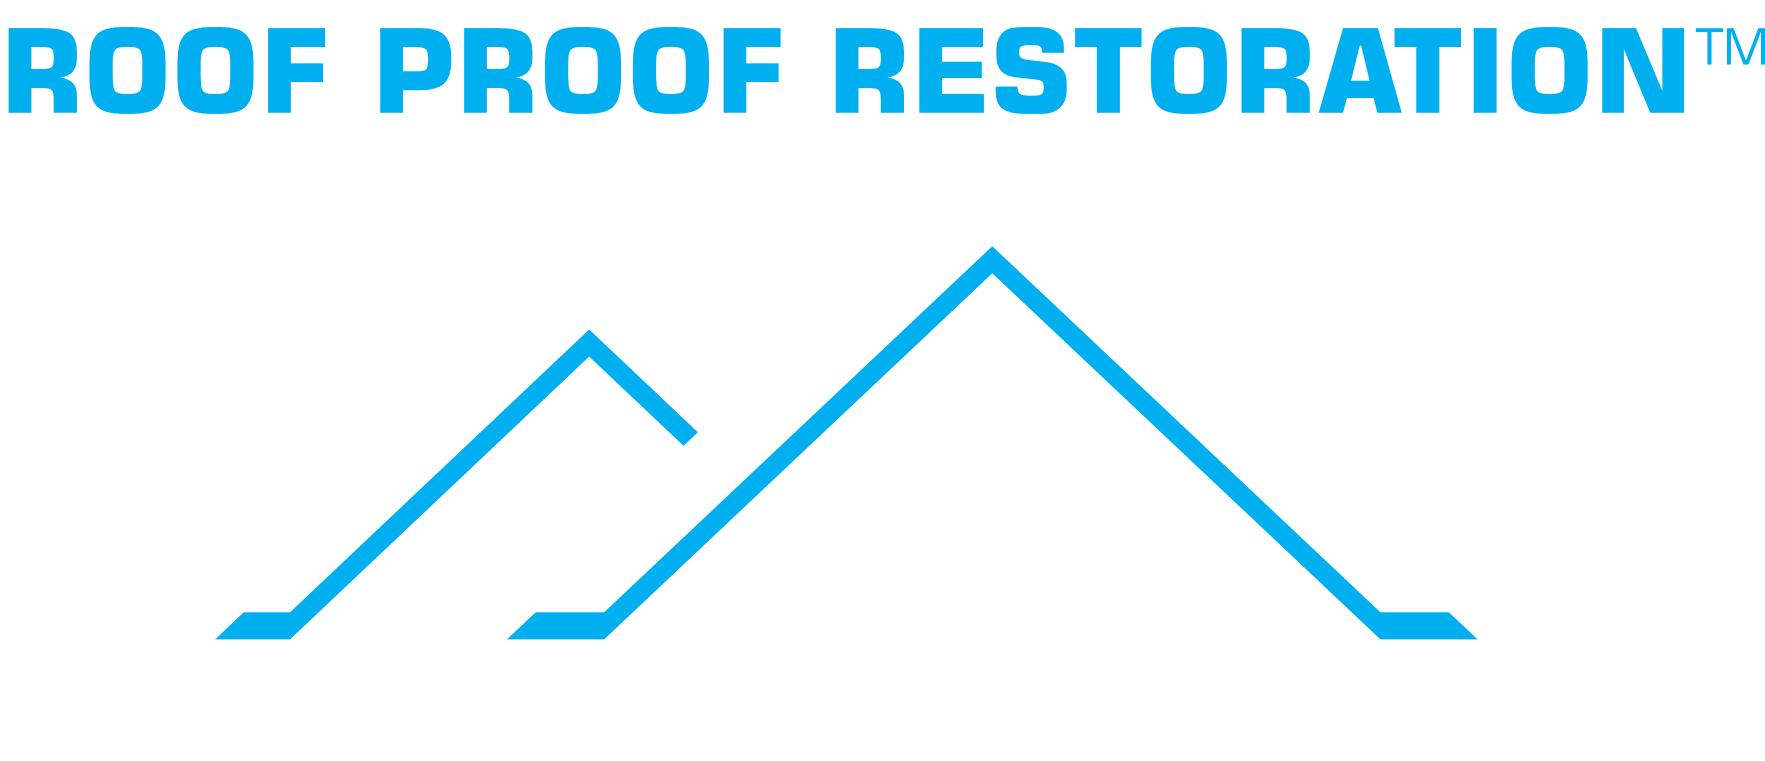 Roof Proof Restoration - Waterproofing and Roof Repairs